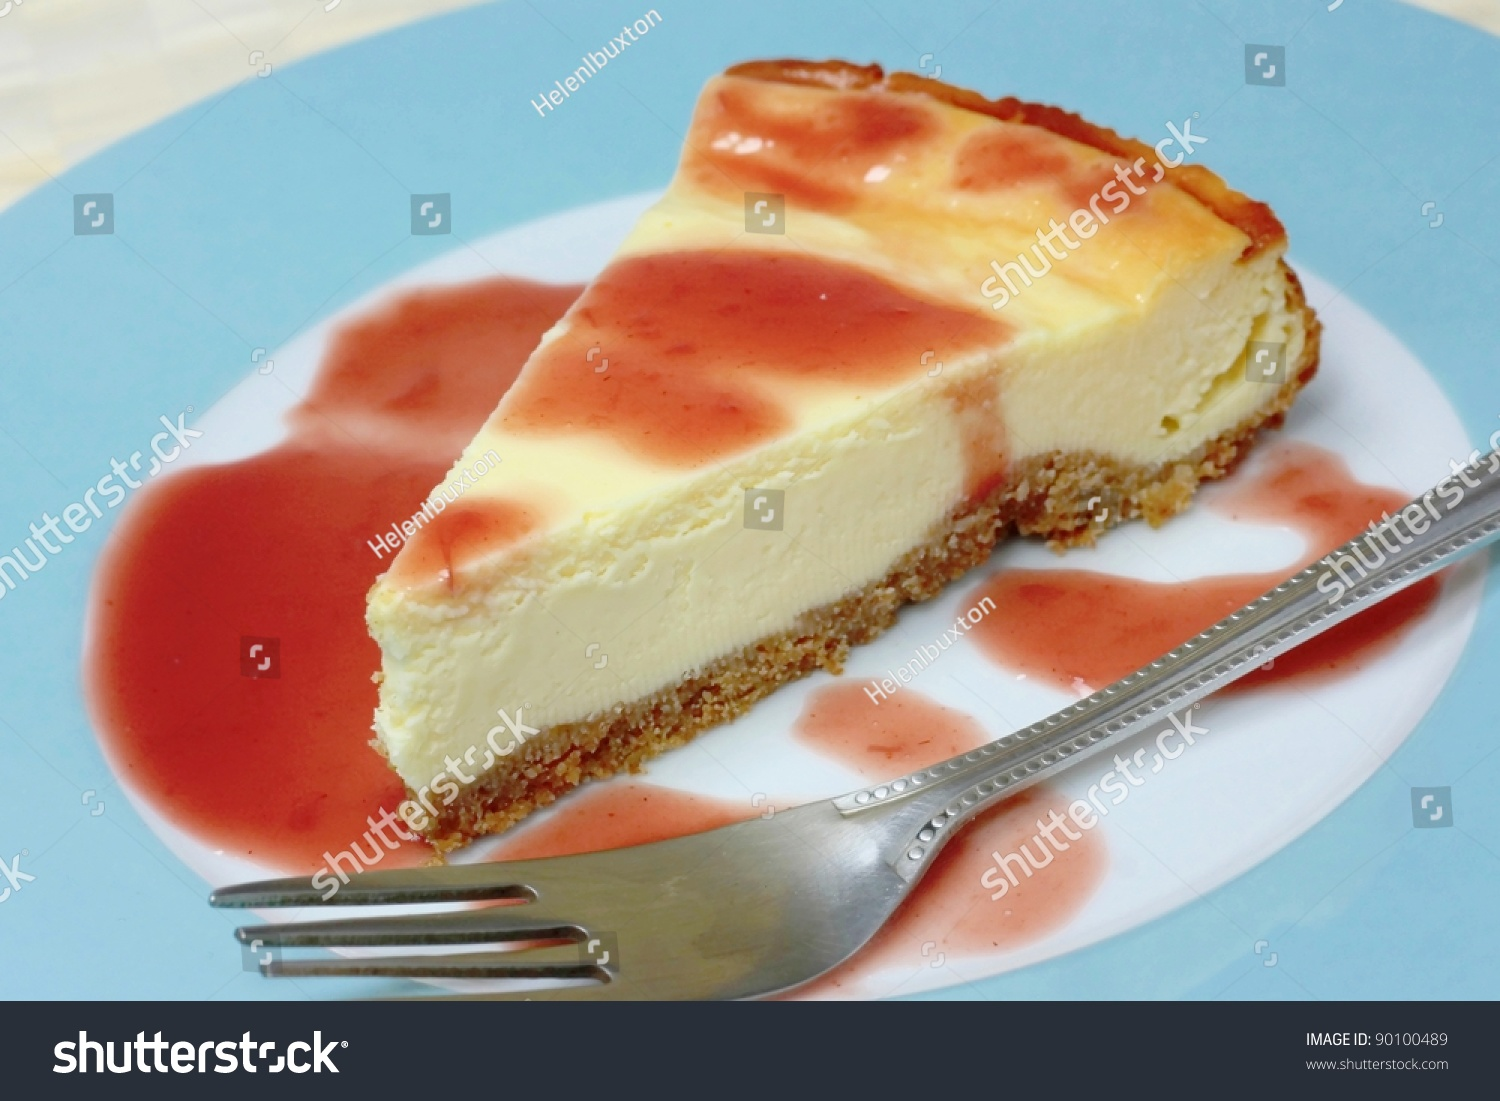 Piece new york cheesecake fruit coulis stock photo for Fruit coulis